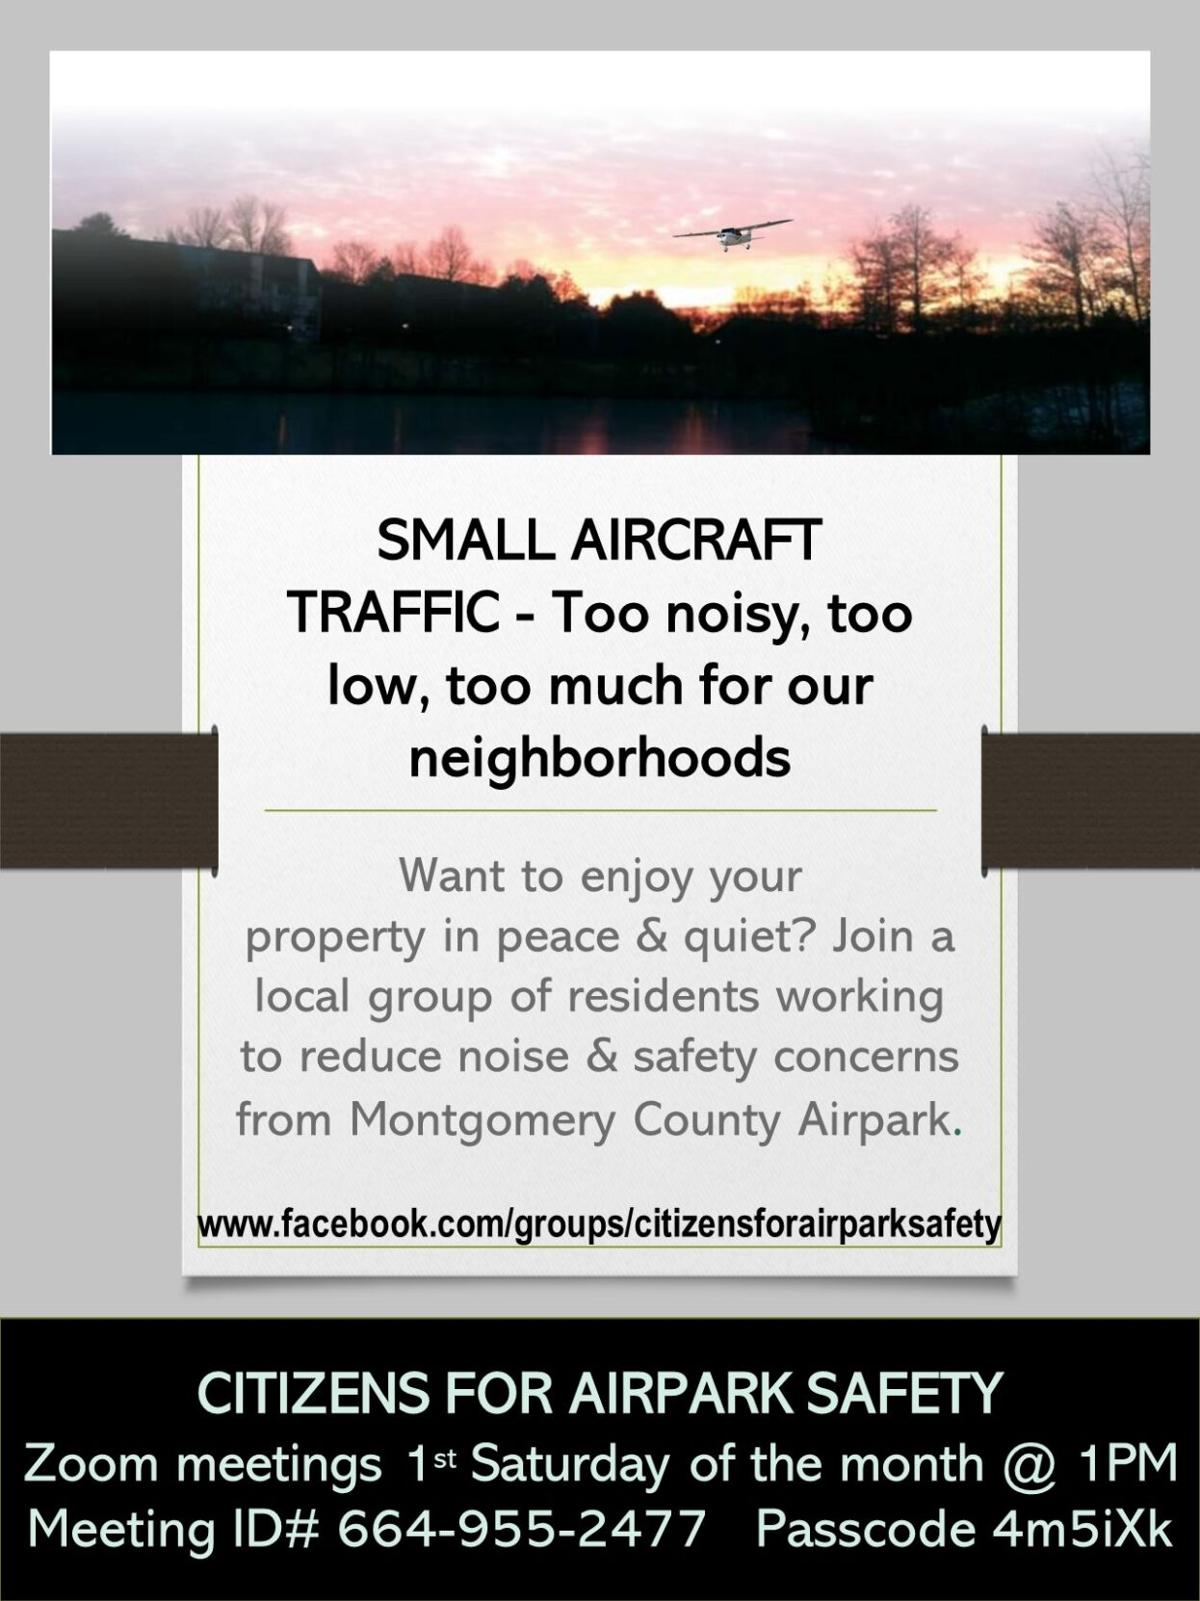 Citizens for Airpark Safety